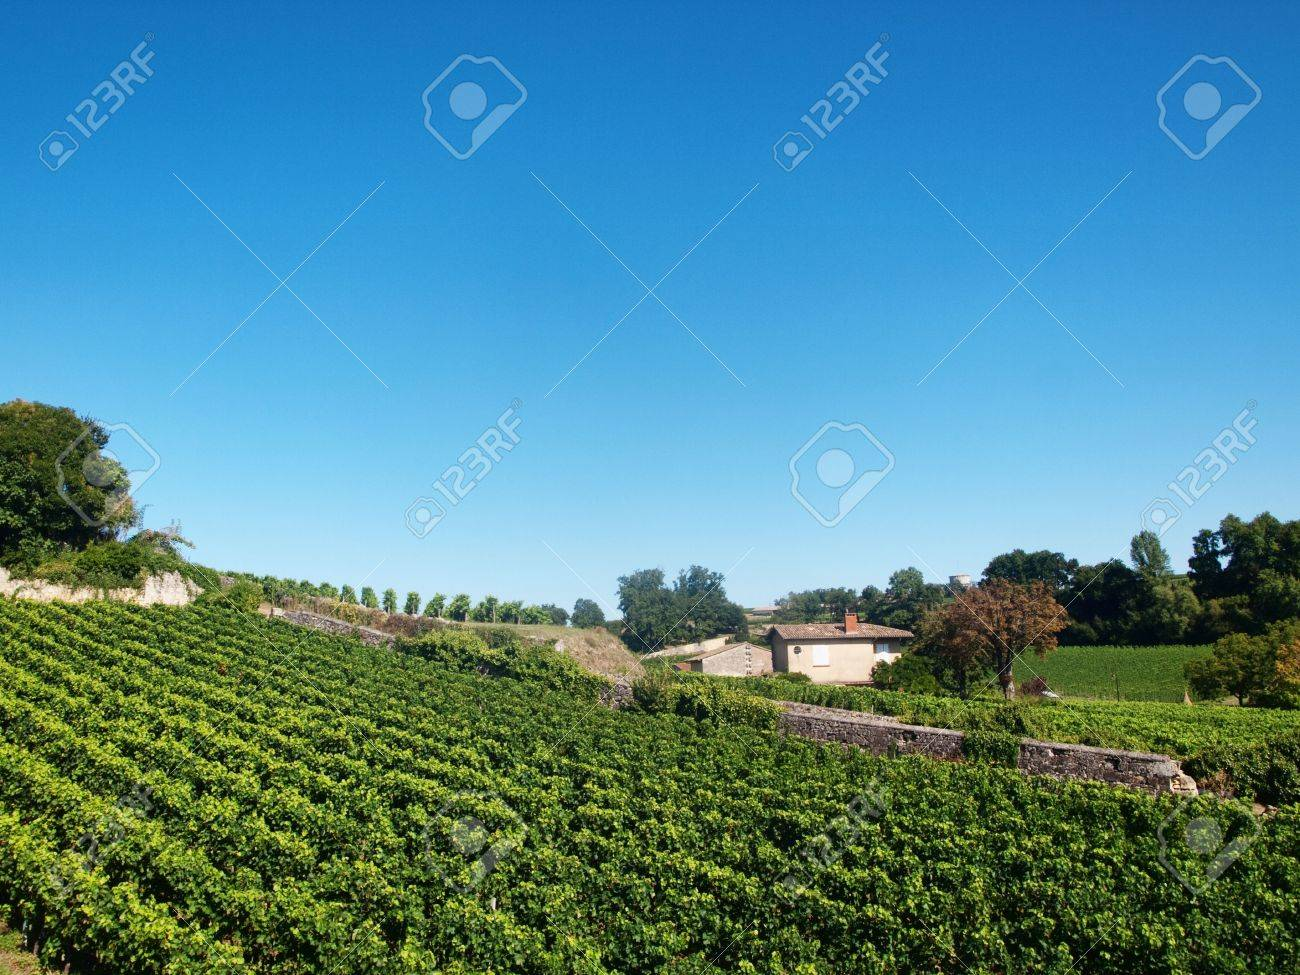 Vineyard in the village of Saint Emilion in France Stock Photo - 5934086